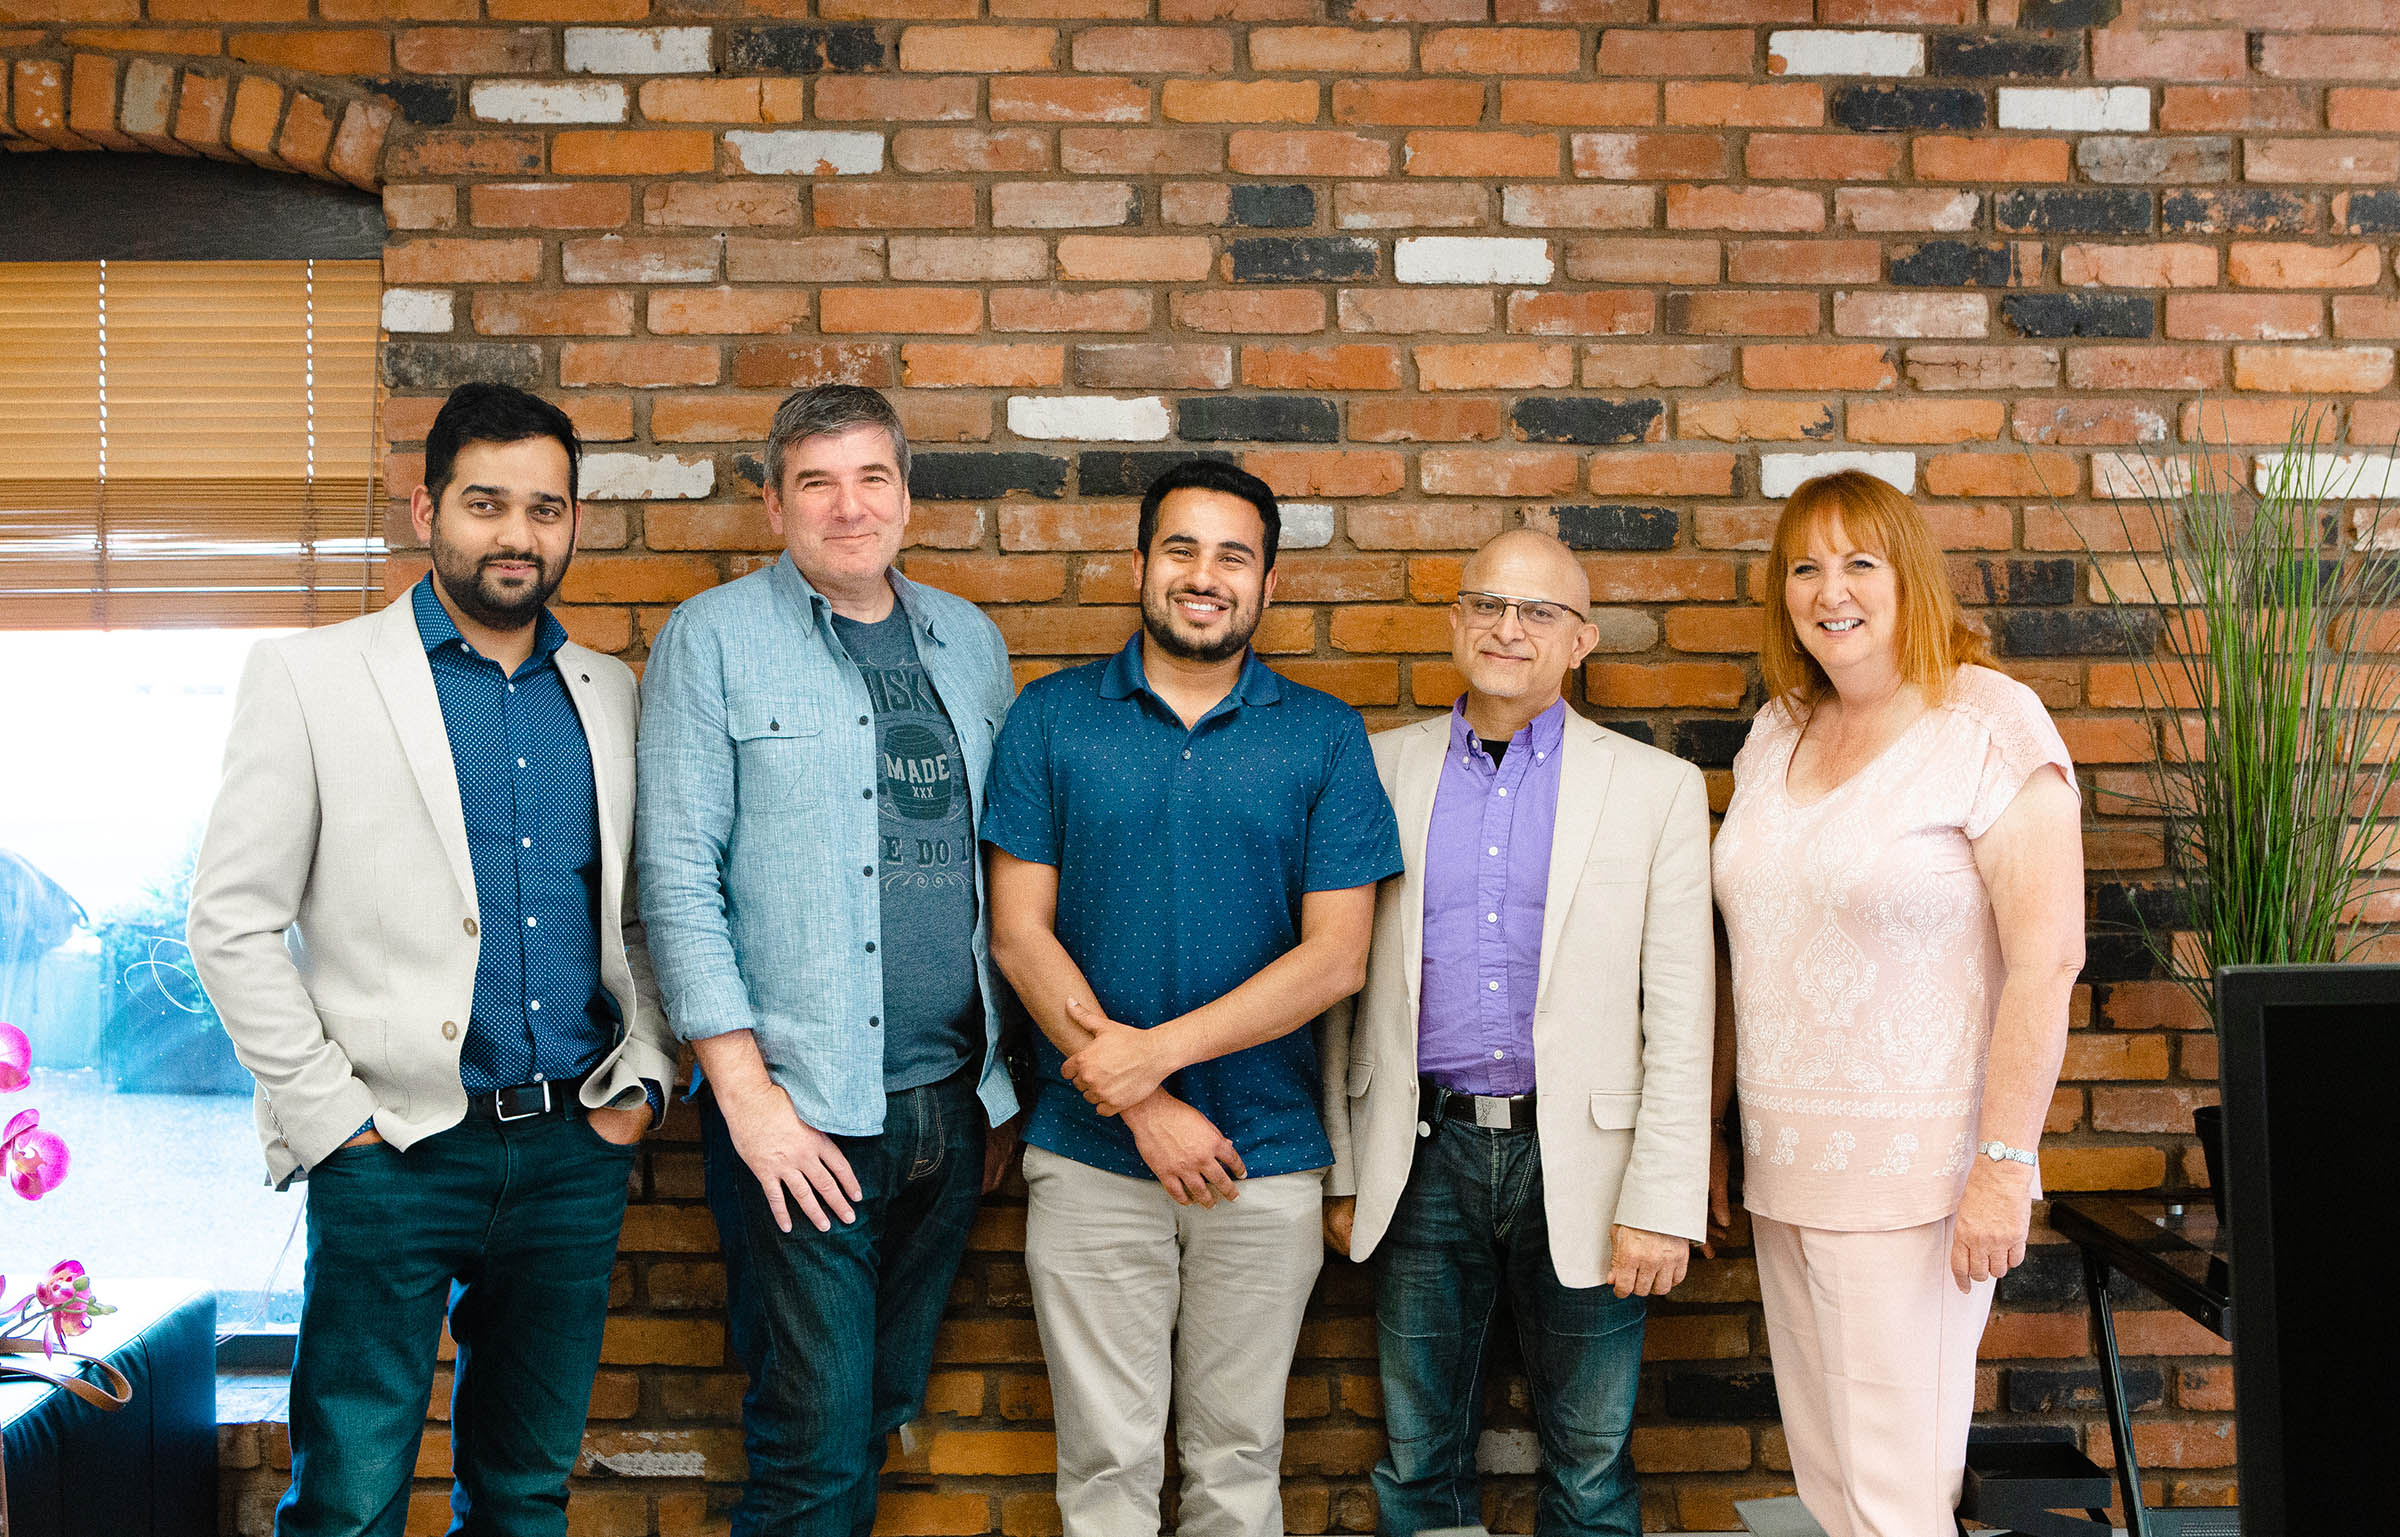 From left to right: Sam Mod (FreshWorks CEO), Stuart Silberg (APFM CTO), Rohit Boulchandani (FreshWorks COO), Nitin Chandra (APFM Director of Apps), Bernie Zigler (APFM Director of Quality Assurance)